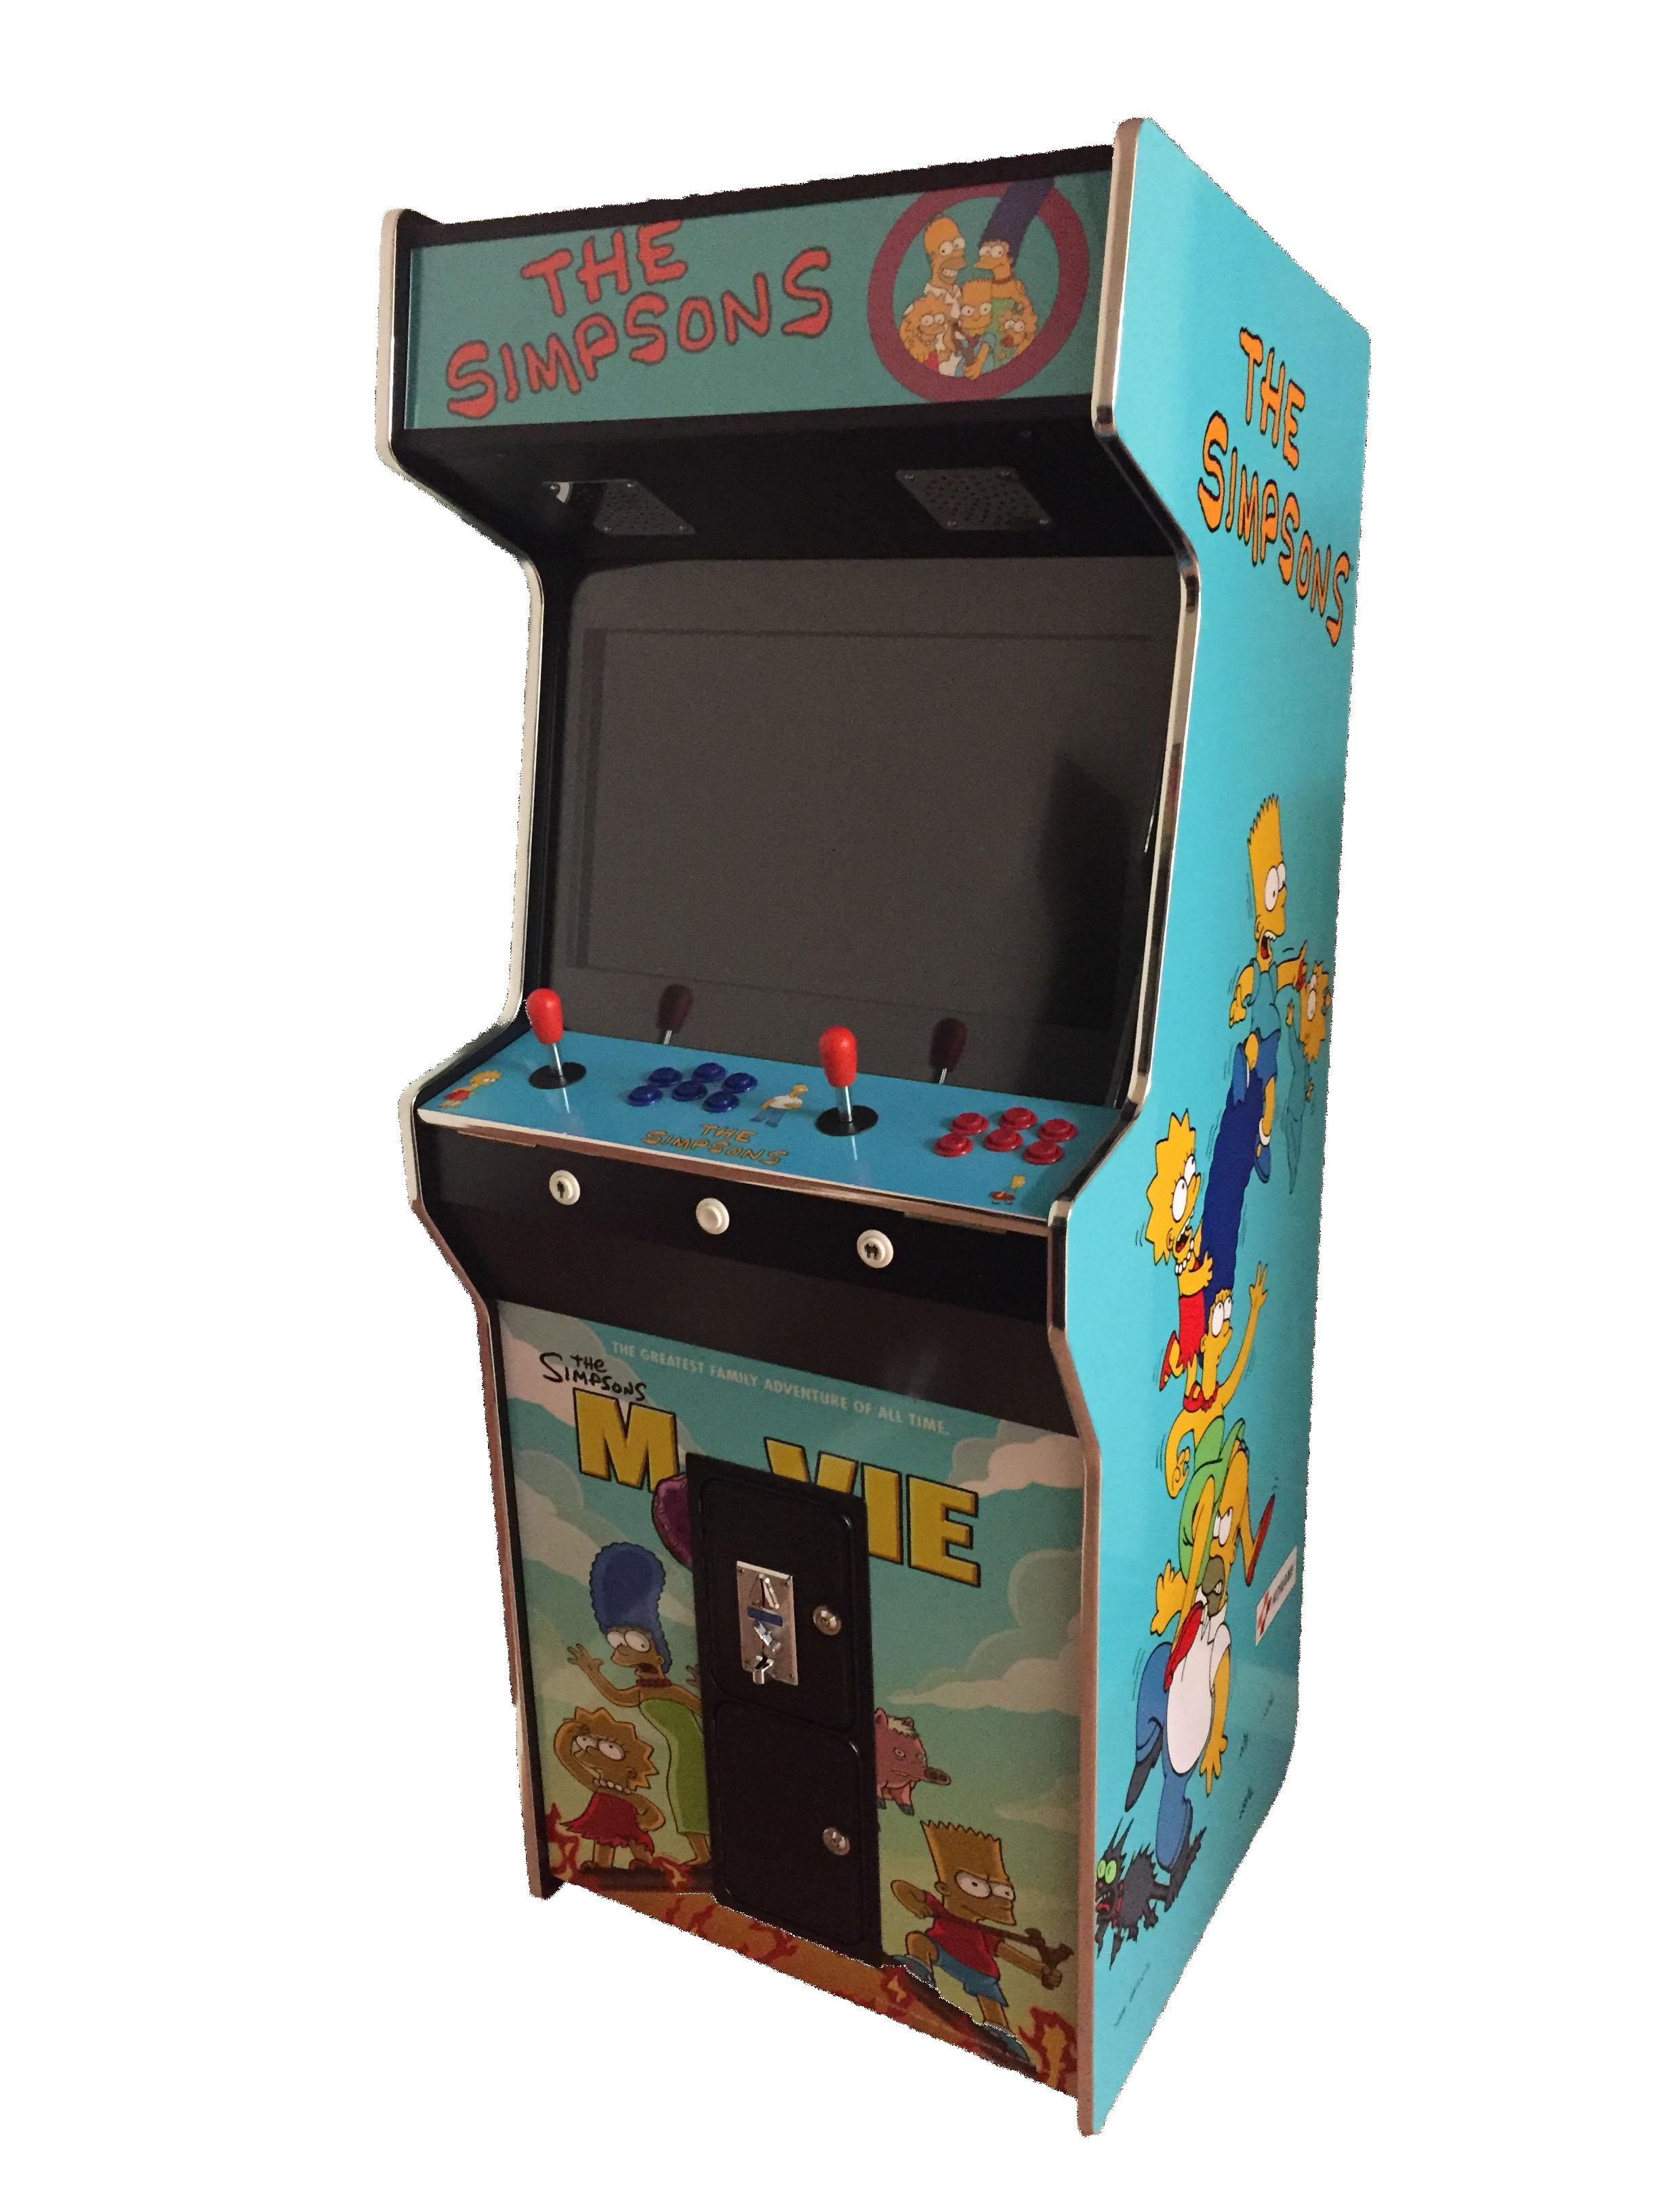 Arcade Rewind 3500 Game Upright Arcade Machine Simpsons